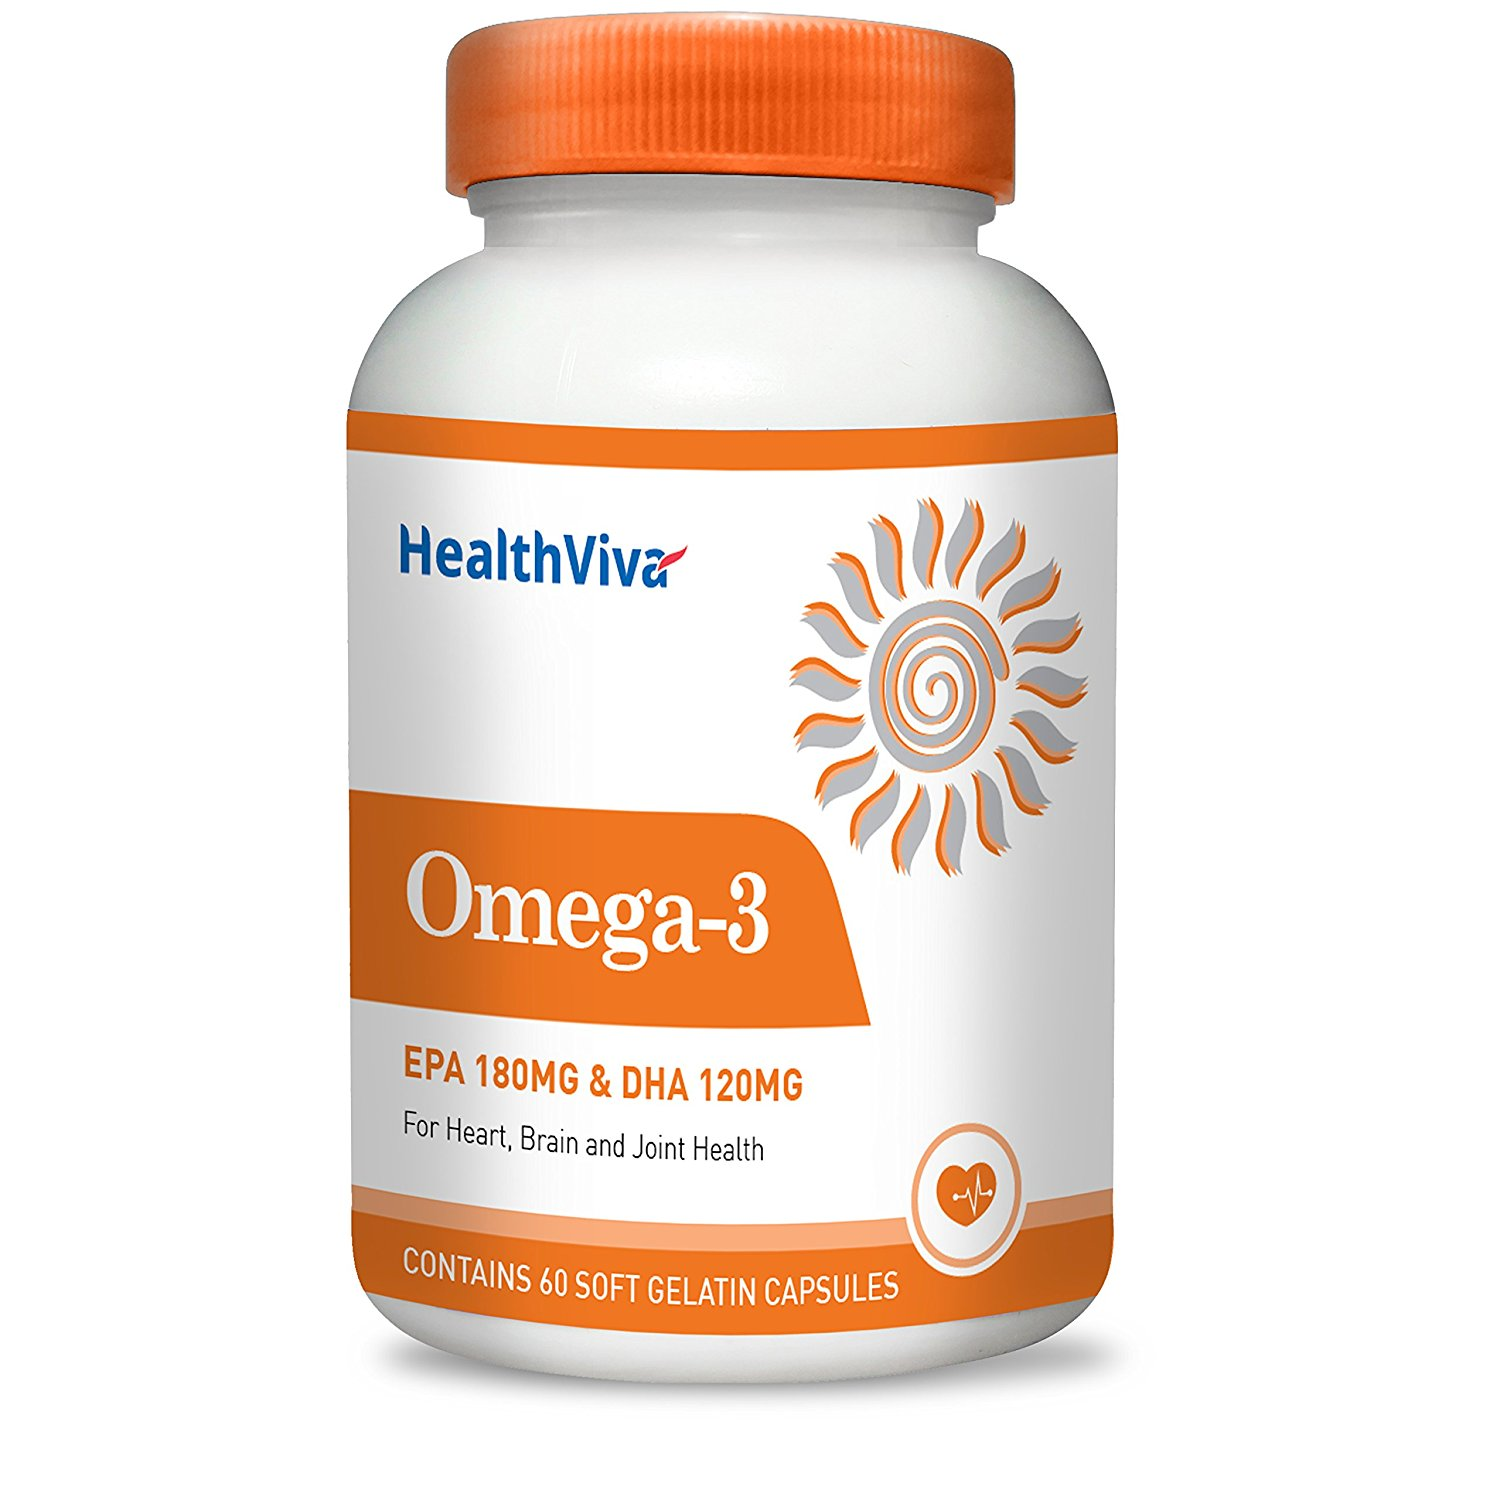 Top 10 Best Omega 3 capsules (Fish Oil) in India - Indian